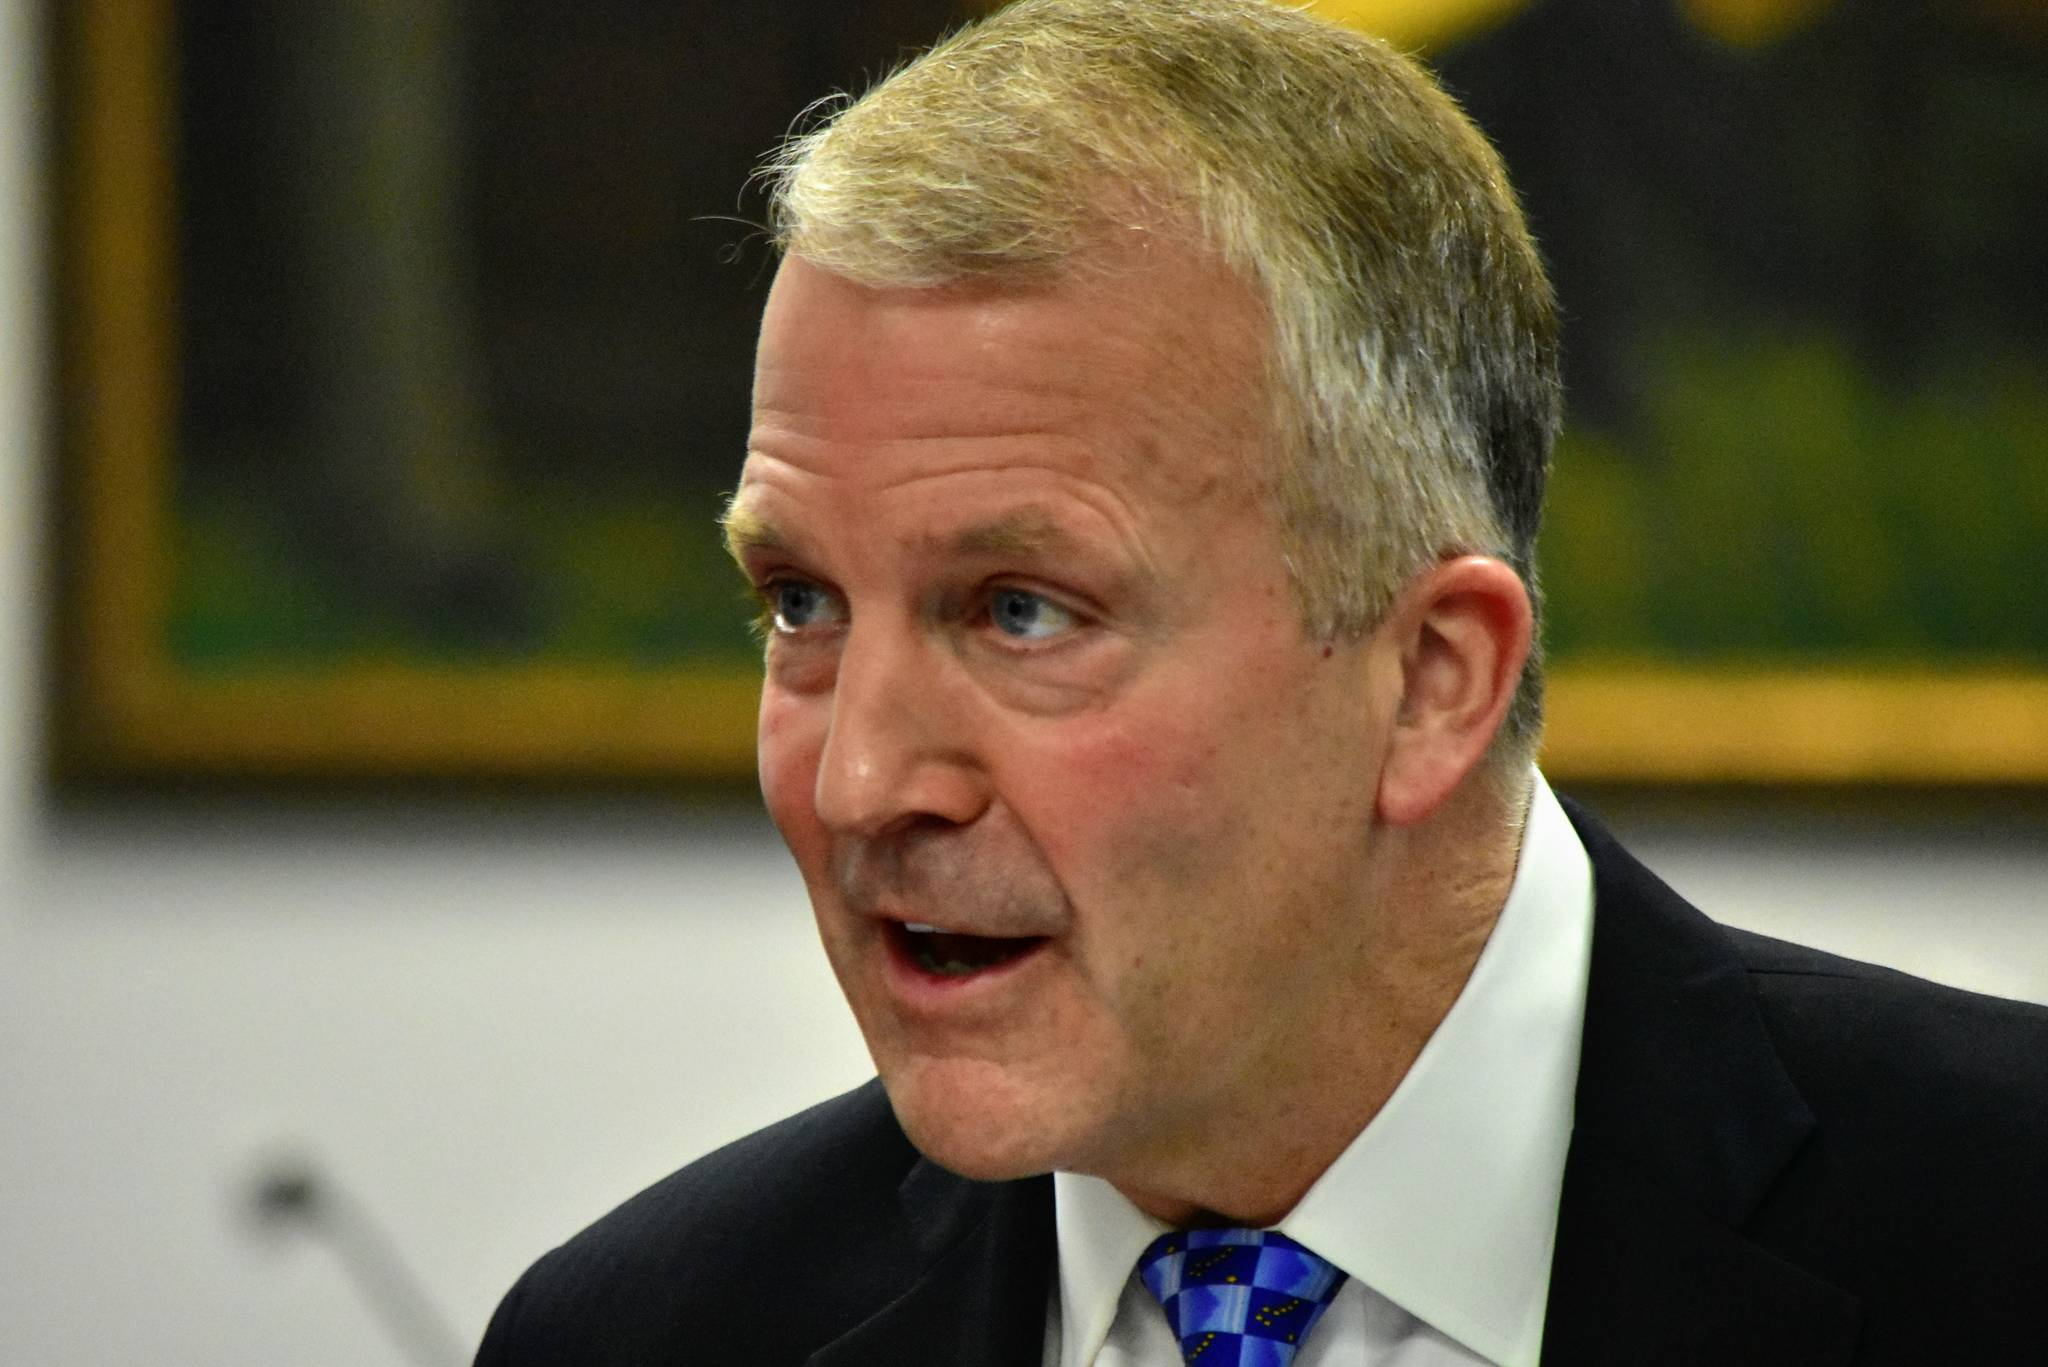 Sen. Dan Sullivan, R-Alaska, met with reporters after delivering an address to the first joint session of 2021 for the Alaska State Legislature on Monday, May 3, 2021. Sullivan was critical of the Biden administration in his remarks to lawmakers, saying his environmental policies were punative to Alaska. (Peter Segall / Juneau Empire)